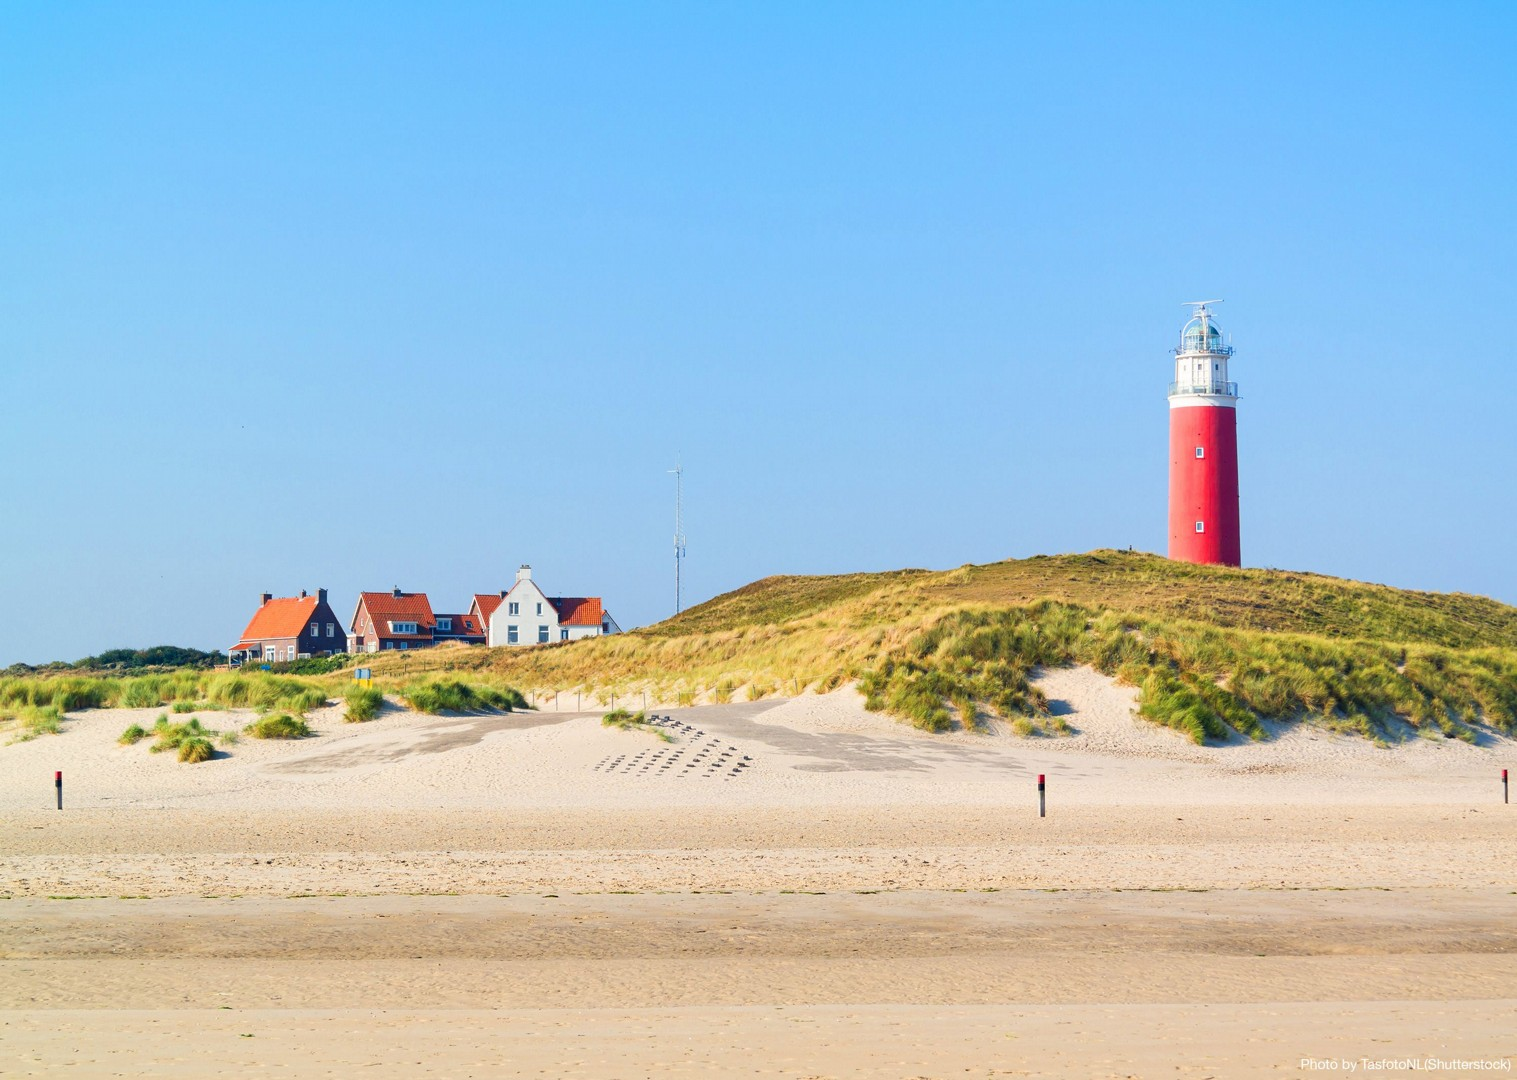 golden-beaches-to-explore-at-your-own-pace.jpg - Holland - Windmills and Golden Beaches - Bike and Barge Holiday - Leisure Cycling